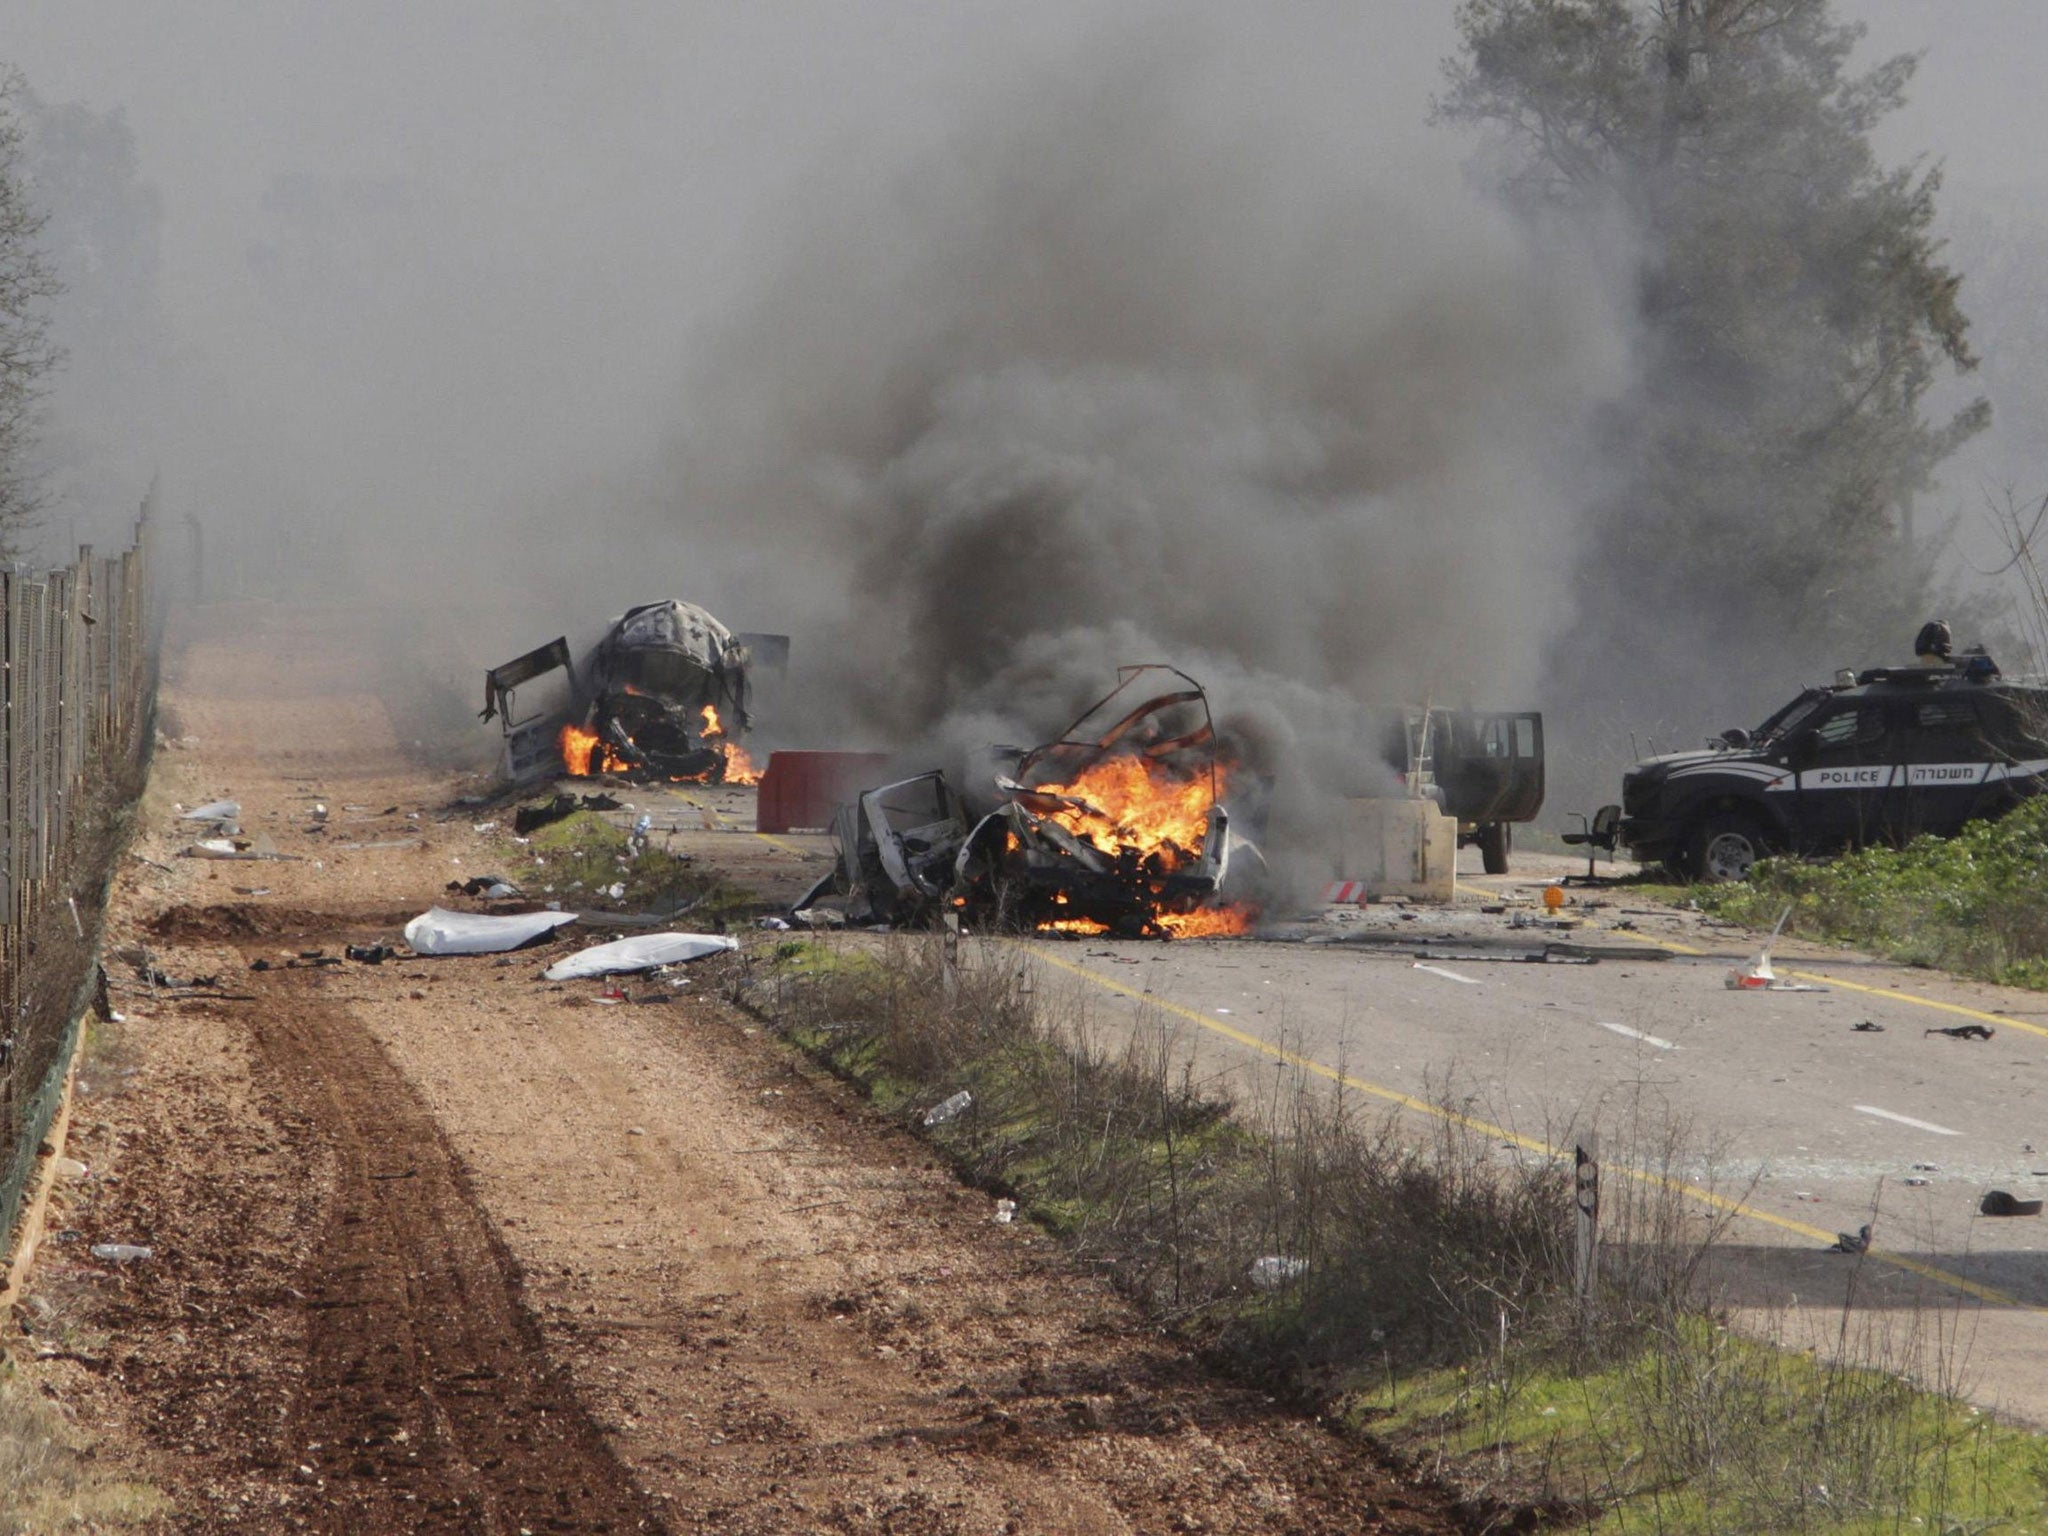 lebanon israel hamas hezbollah conflict 30052013 the increased tension between hezbollah and hamas in syria will not spare lebanon recent clashes among assir and hezbollah.